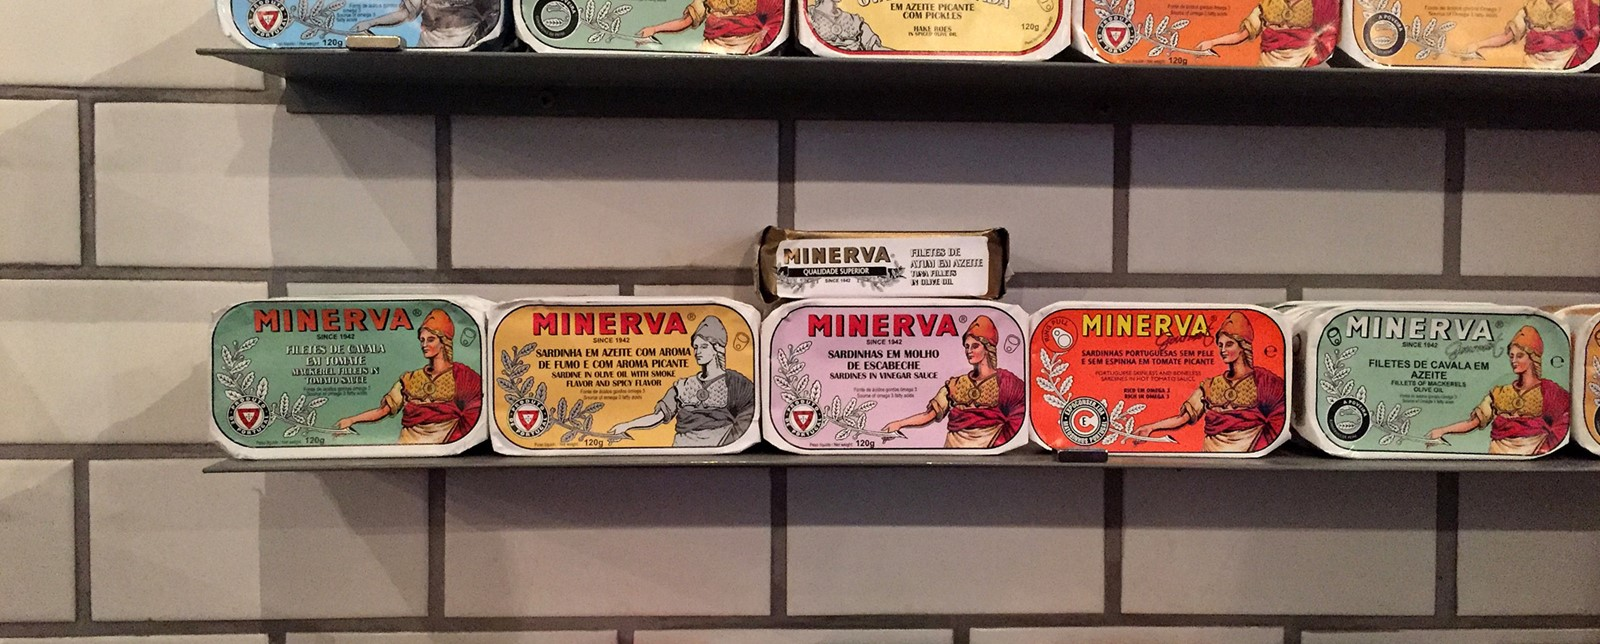 Minerva brand tinned fish on a shelf at Conserveira De Lisboa